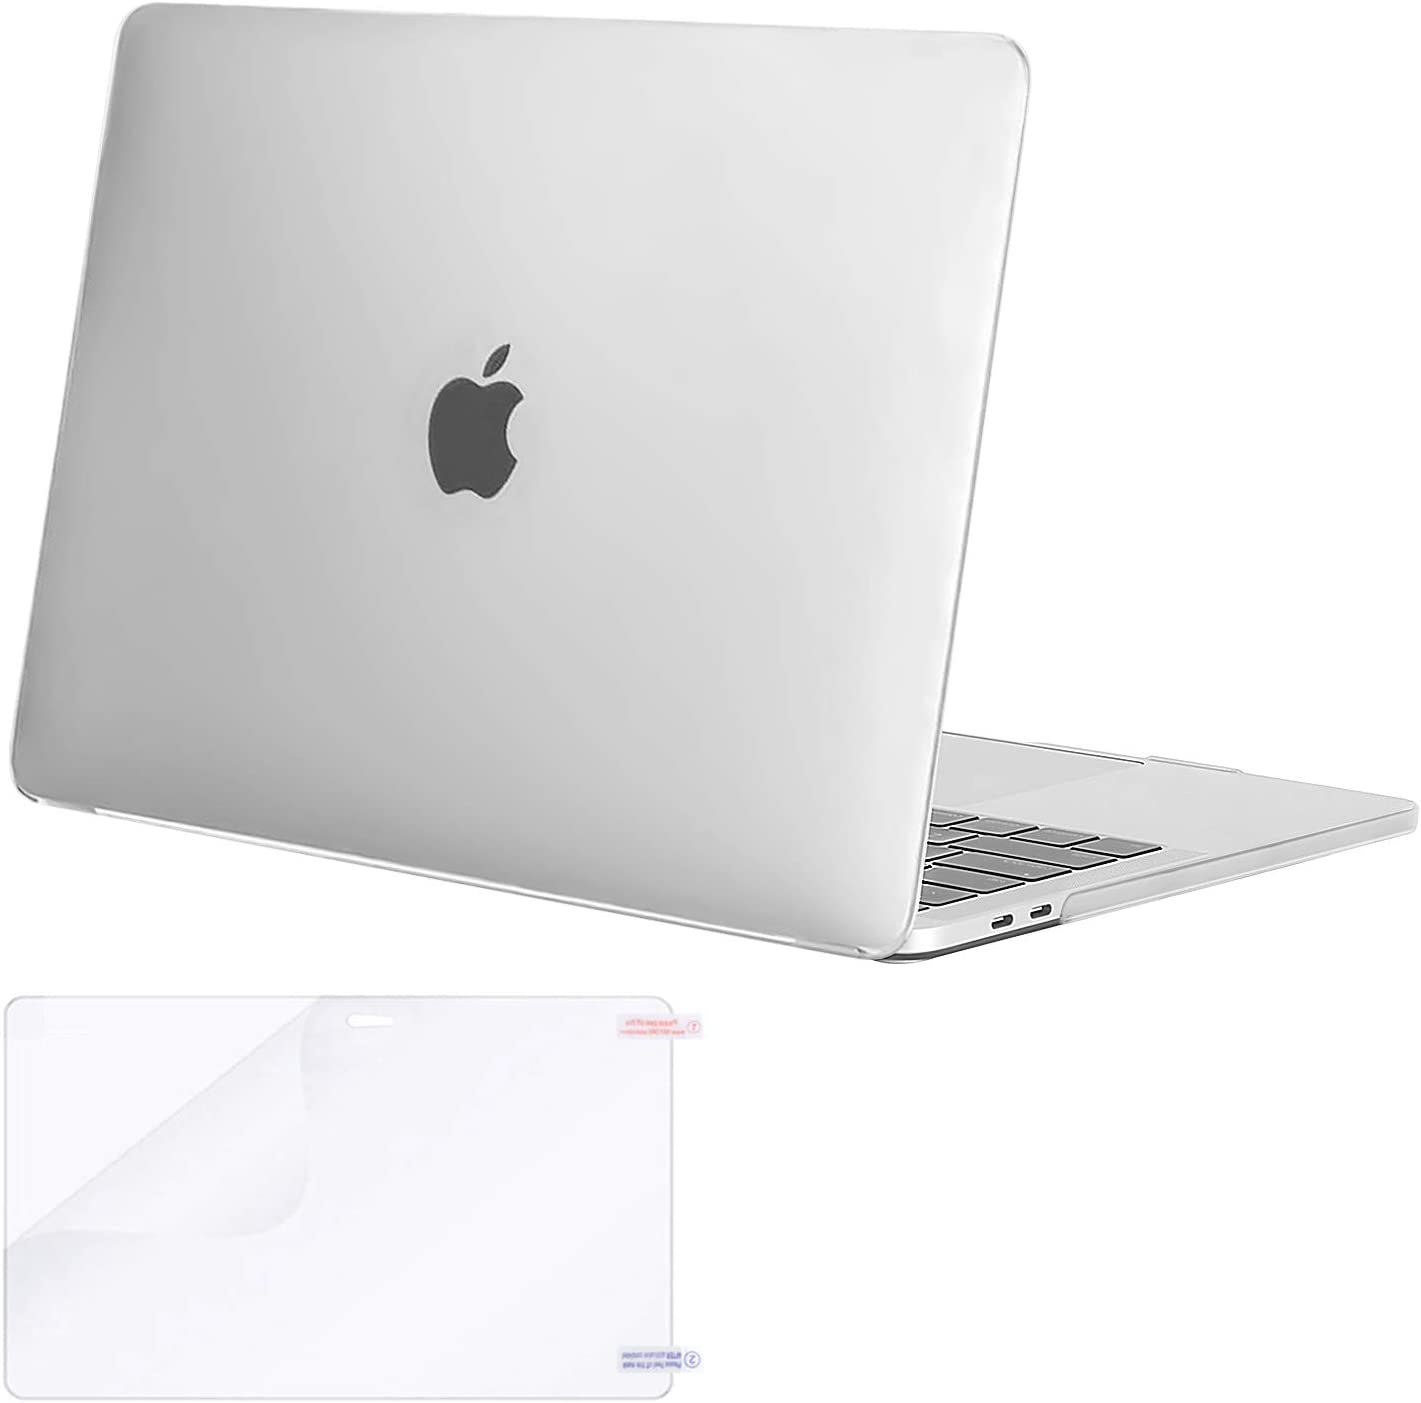 MOSISO MacBook Pro 13 inch Case 2020 2019 2018 2017 2016 Release A2289 A2251 A2159 A1989 A1706 A1708, Plastic Hard Shell Case Cover&Screen Protector Compatible with MacBook Pro 13 inch, Frost